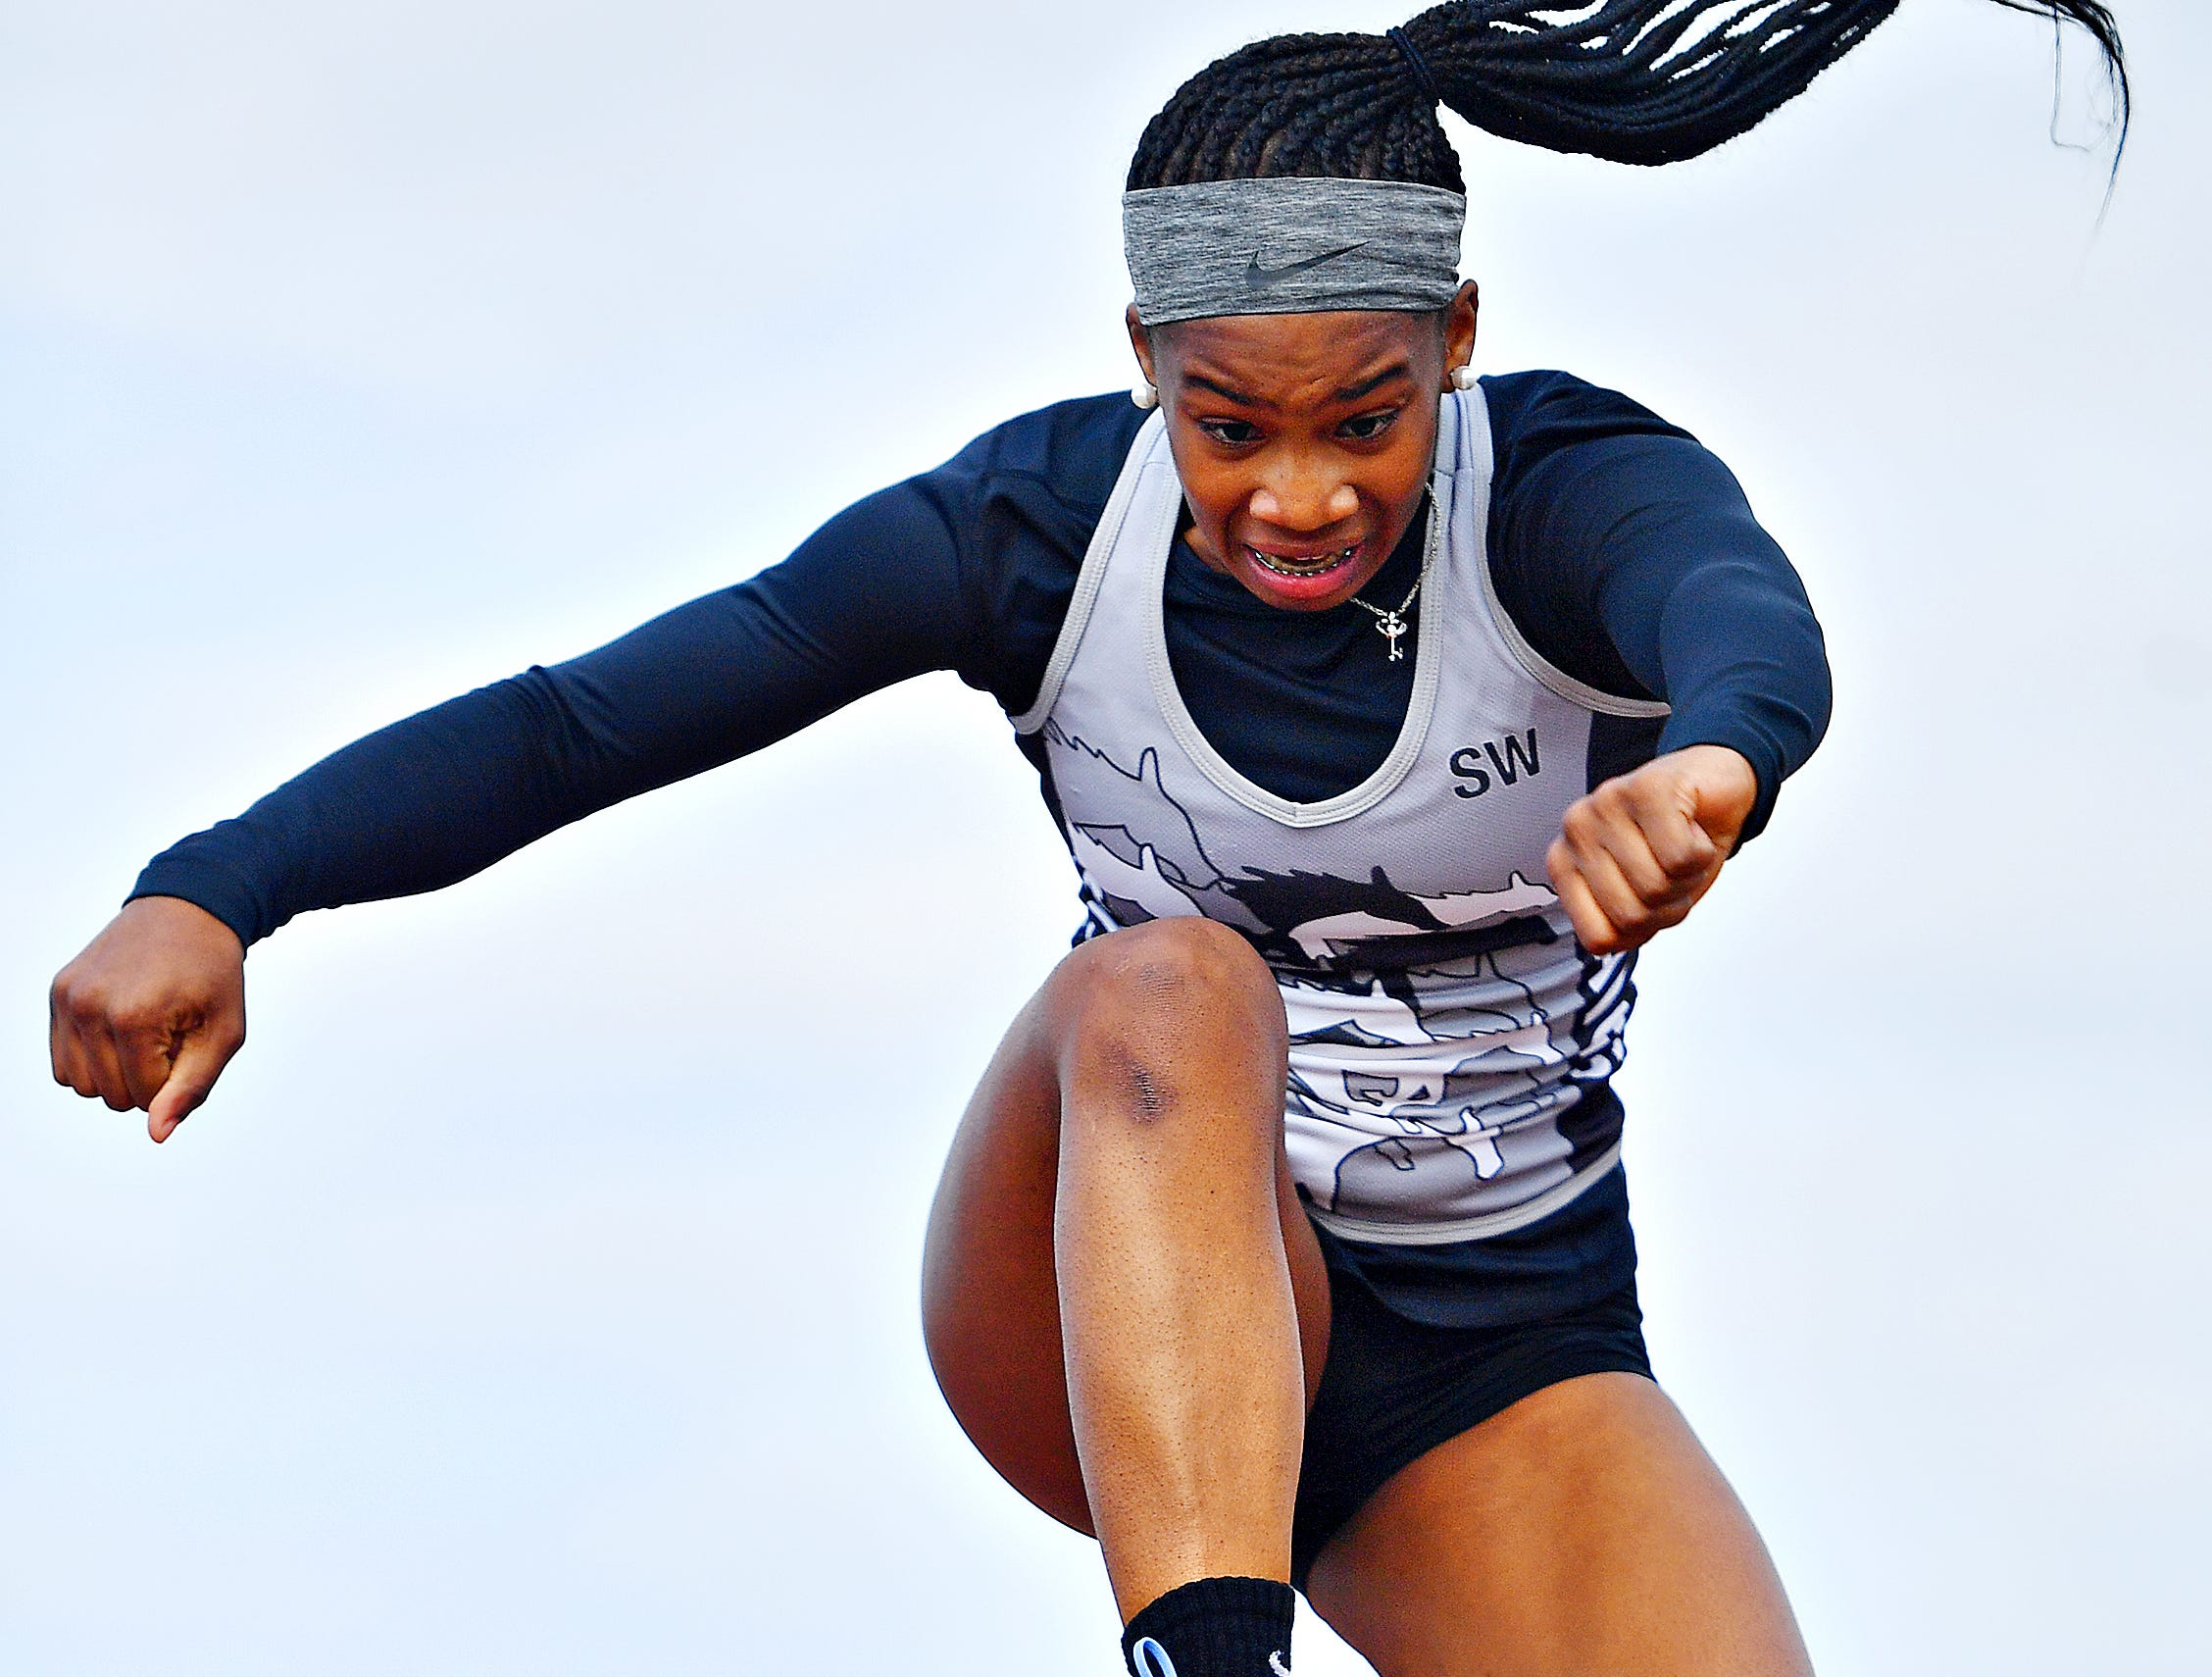 South Western's Zaiyah Marshall competes in the Triple Jump during track  & field action against Spring Grove in Jackson Township, Thursday, April 11, 2019. Dawn J. Sagert photo